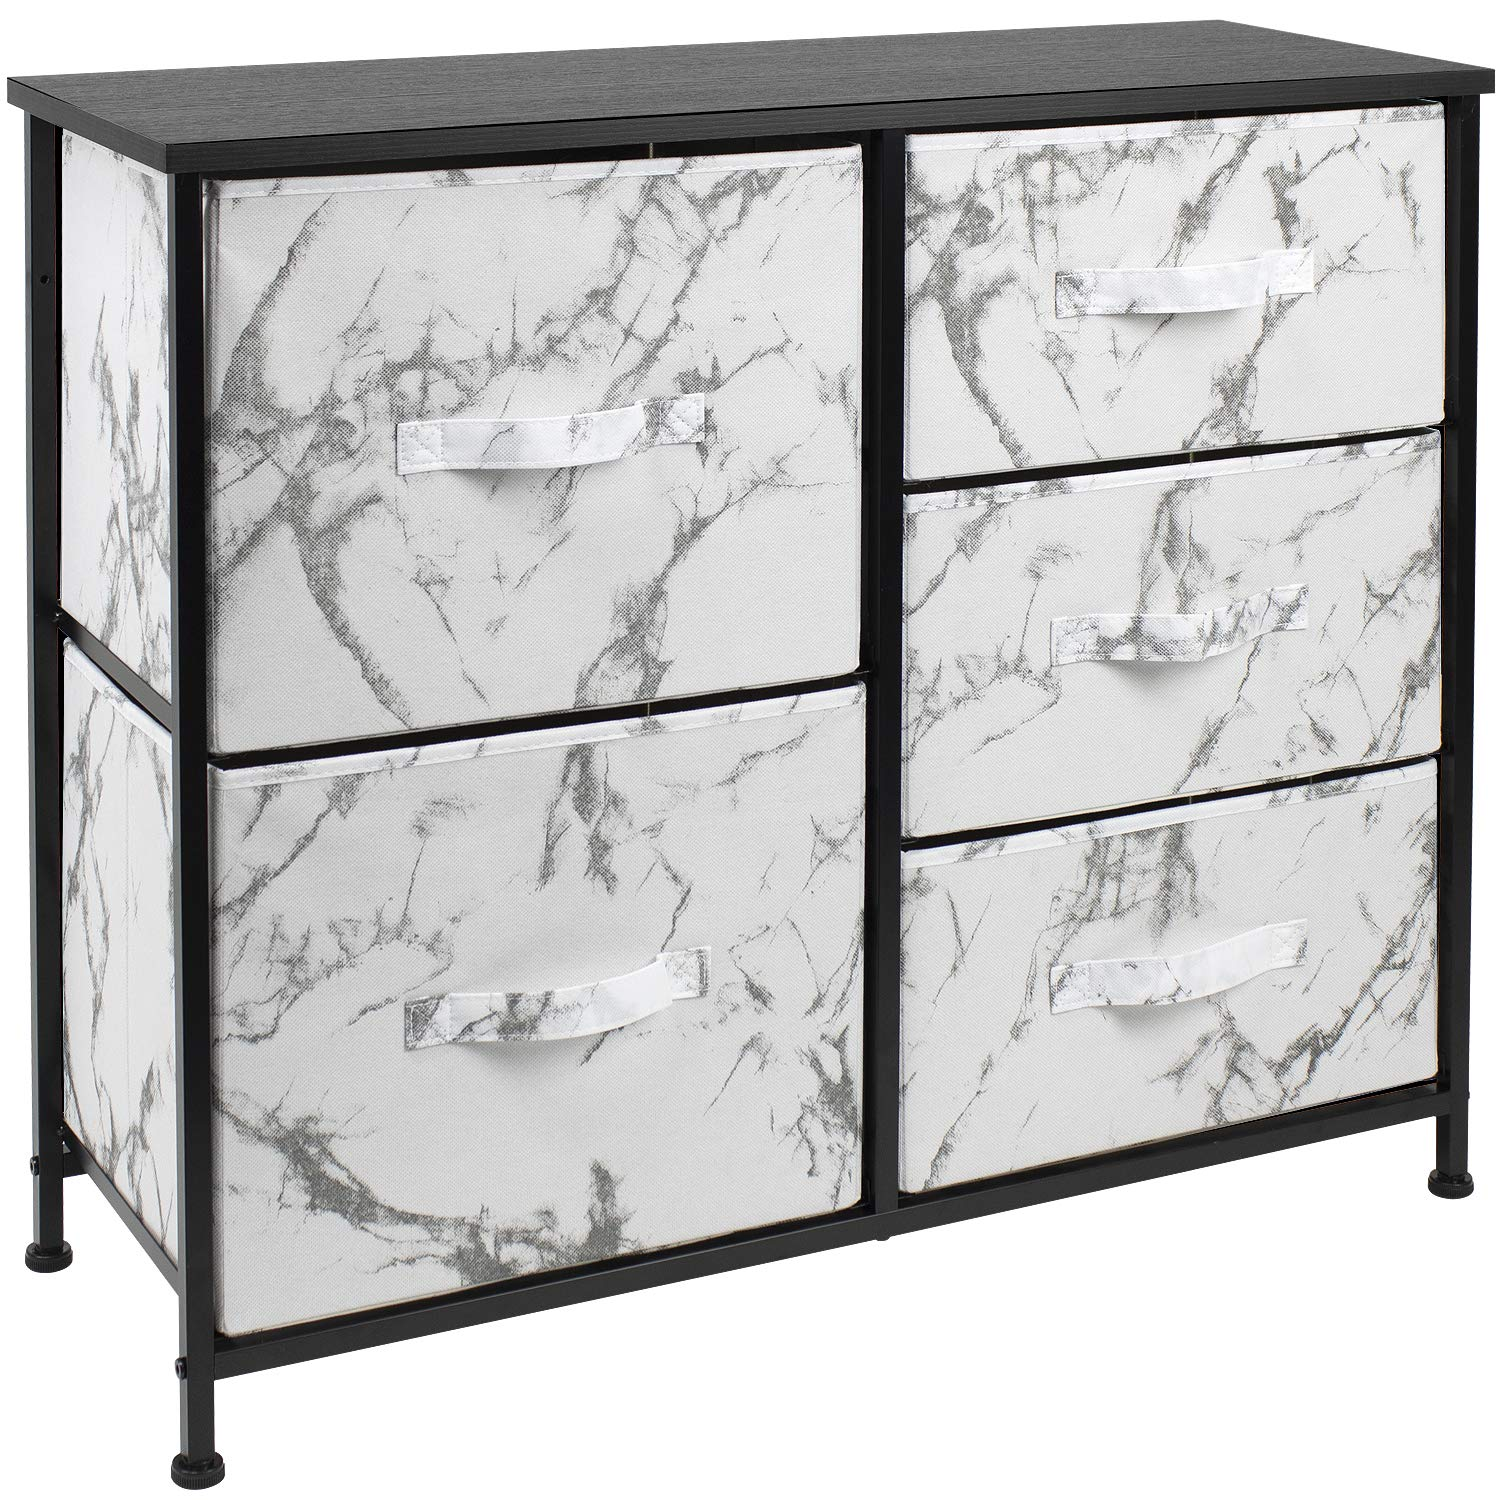 Sorbus Dresser with 5 Drawers - Furniture Storage Tower Unit for Bedroom, Hallway, Closet, Office Organization - Steel Frame, Wood Top, Fabric Bins (5-Drawer Dresser Chest, Marble White – Black Frame)